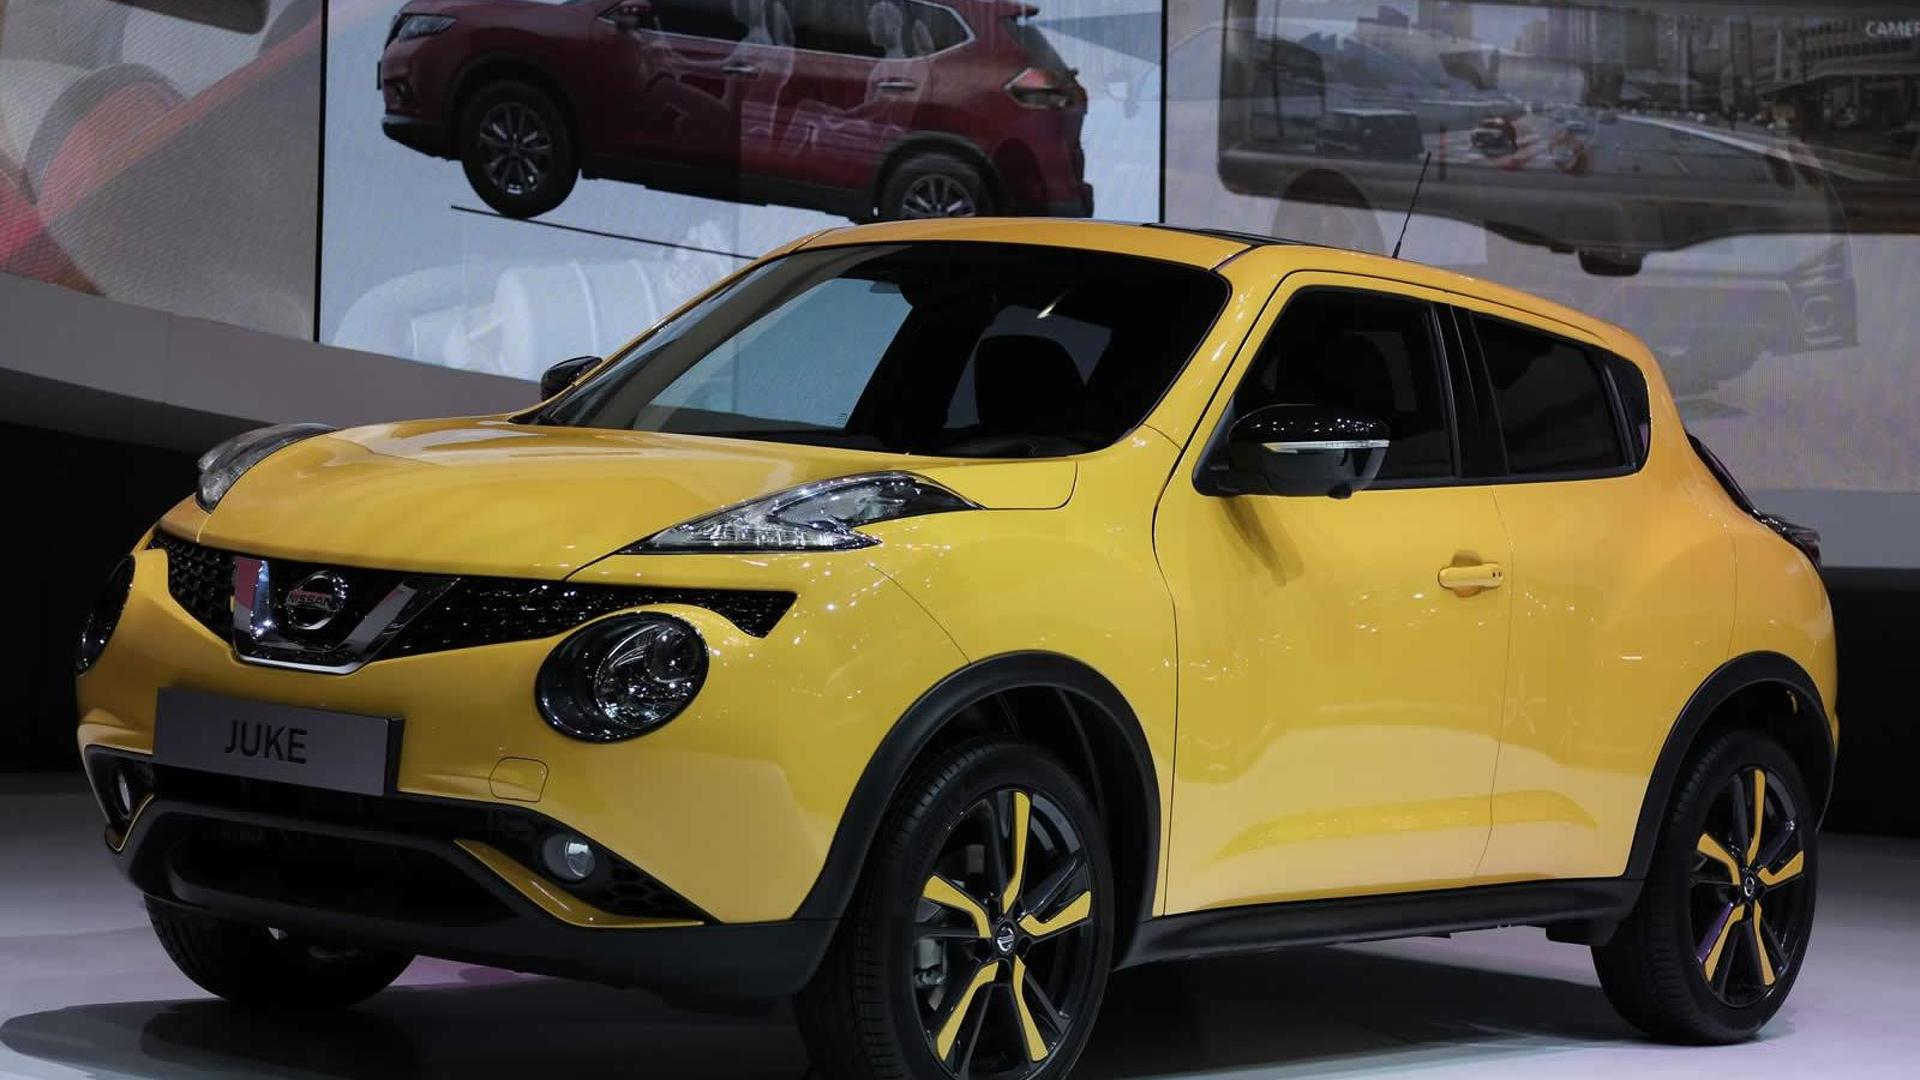 Facelifted Nissan Juke Comes To Geneva With 115 Hp 1 2 Liter Dig T